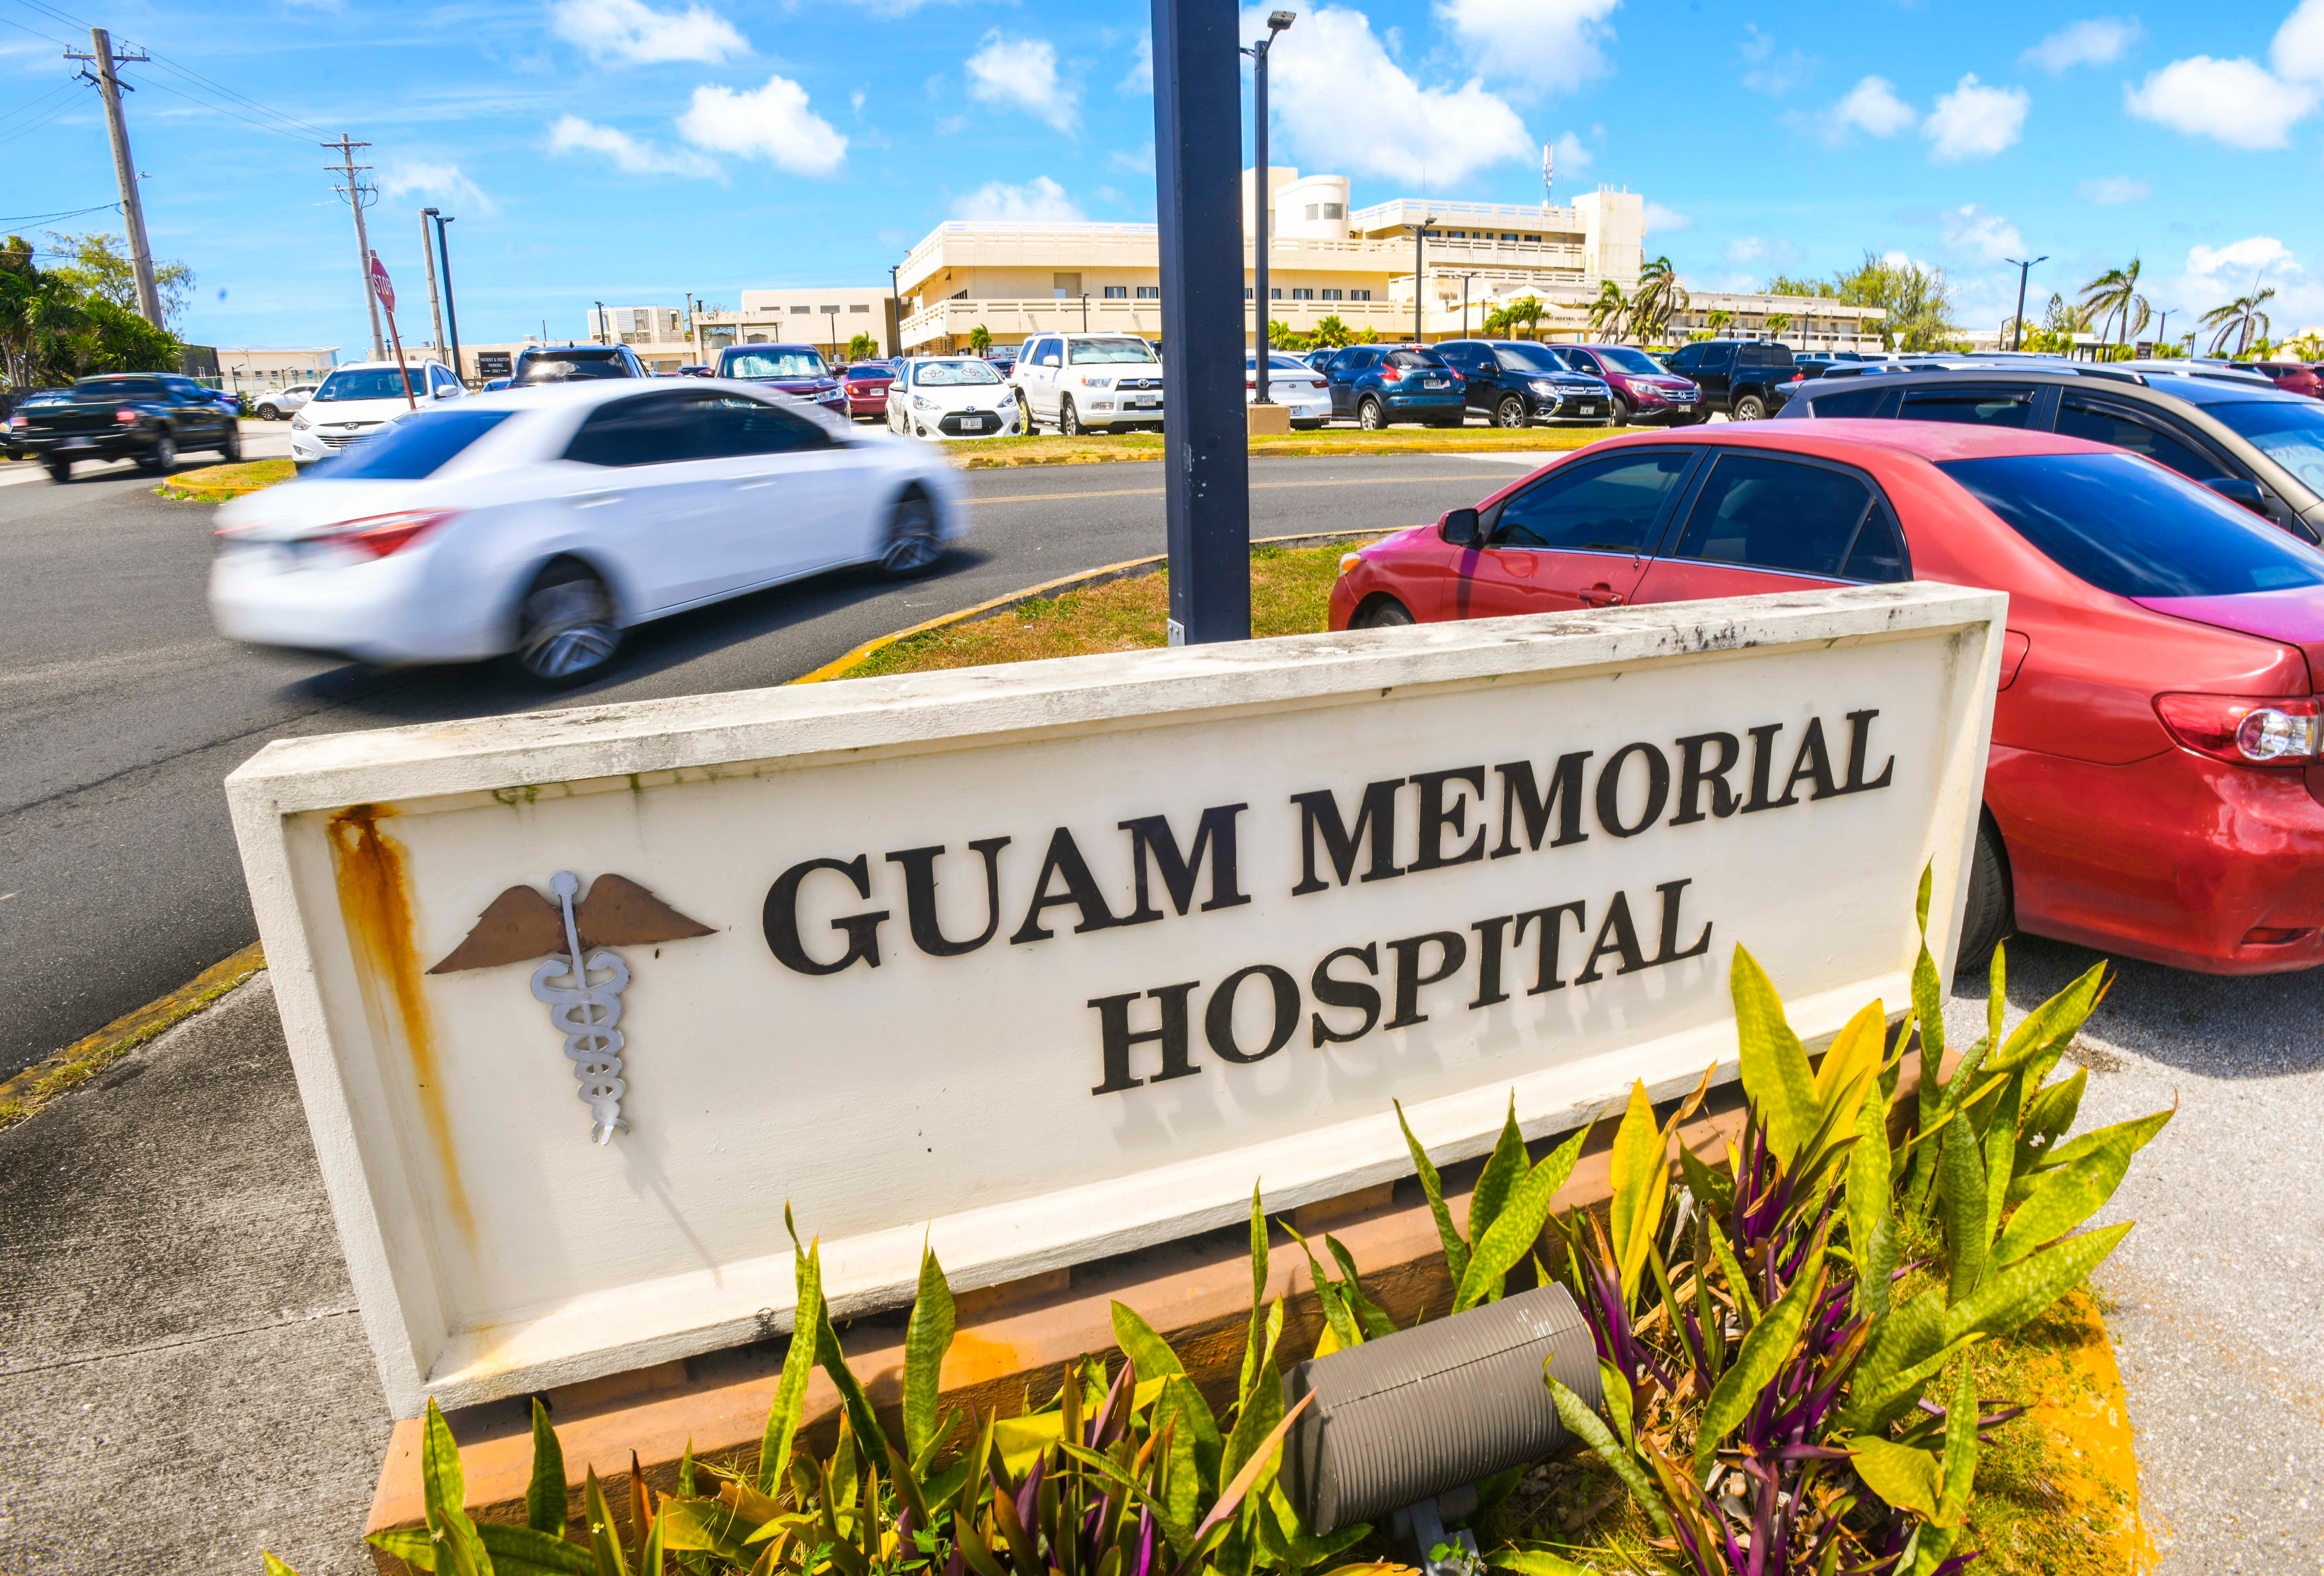 Two more fatalities related to COVID-19 were reported at GMH Thursday, according to the Joint Information Center.